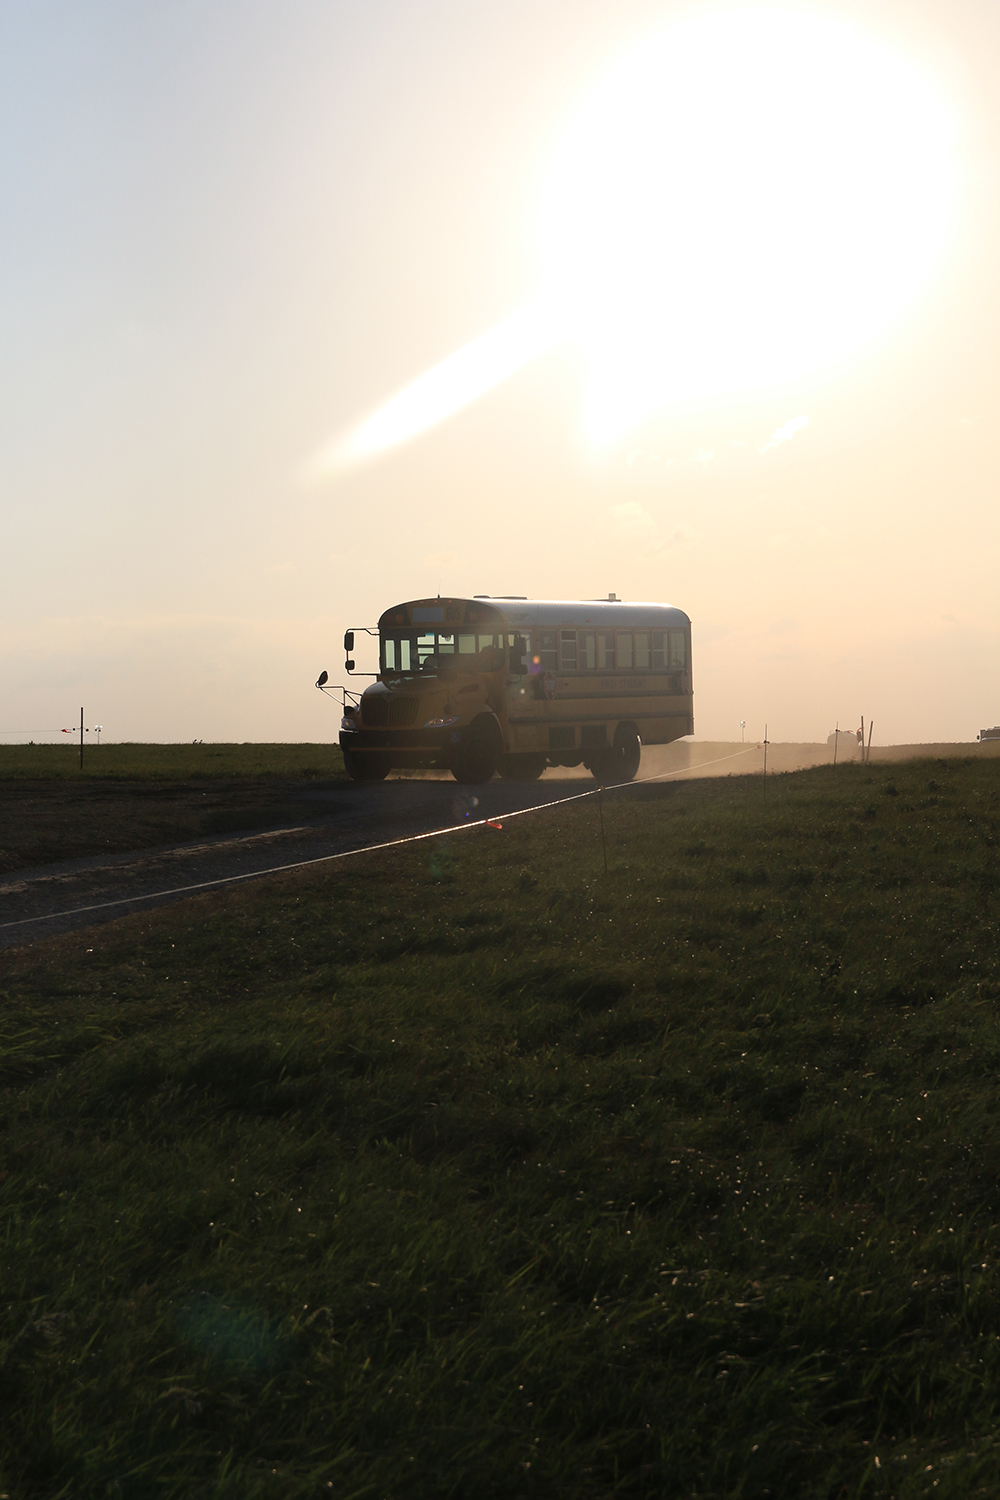 School busses kick up dirt while transporting guests to and from the parking lot on Saturday during the Symphony in the Flint Hills. (Photo by Jessica Craft)